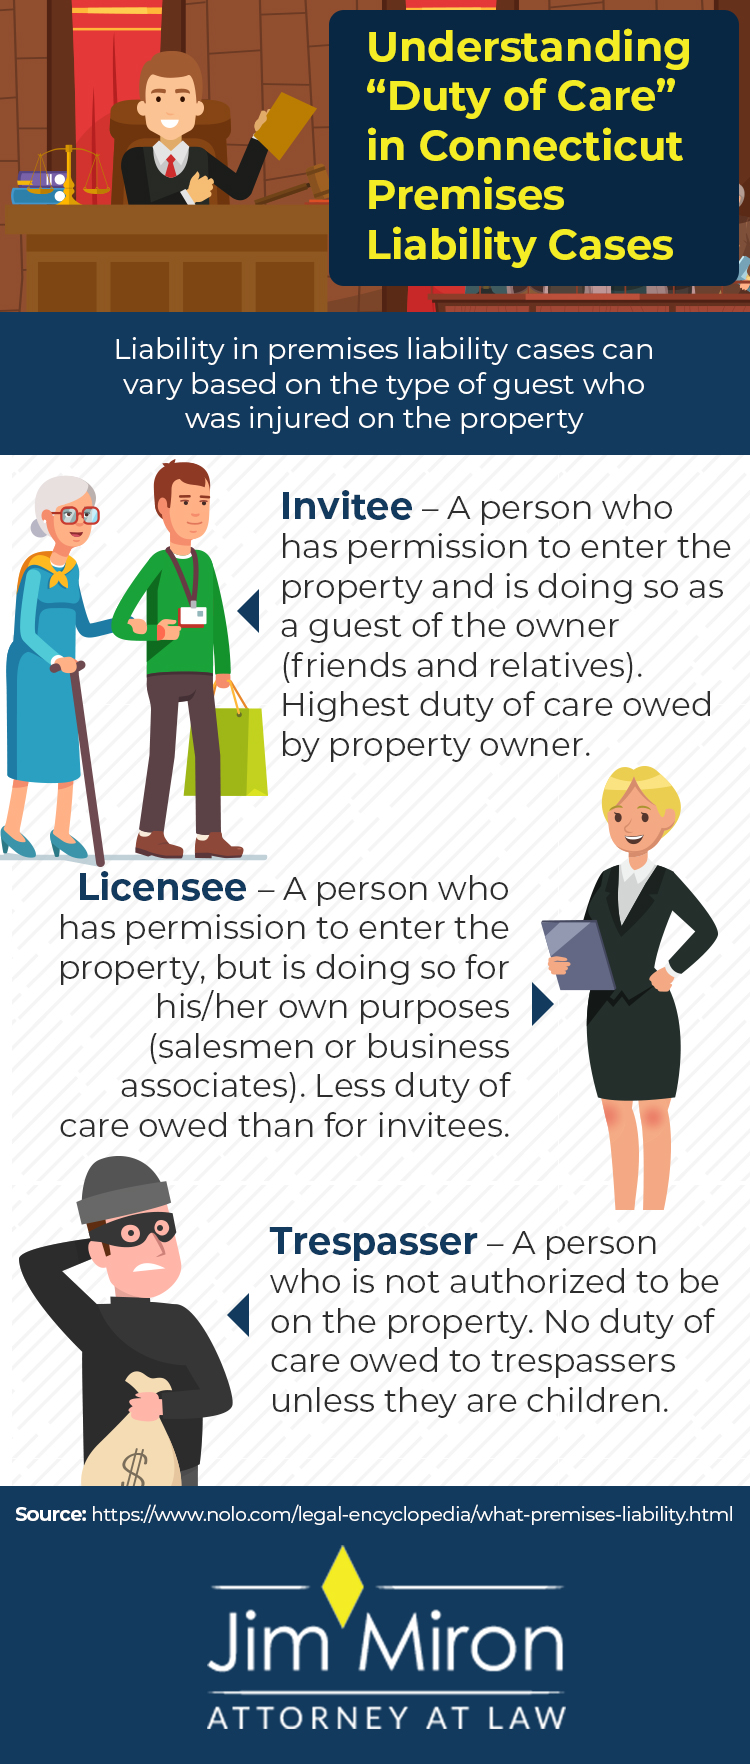 infographic - understanding duty of care in Connecticut premises liabiity cases